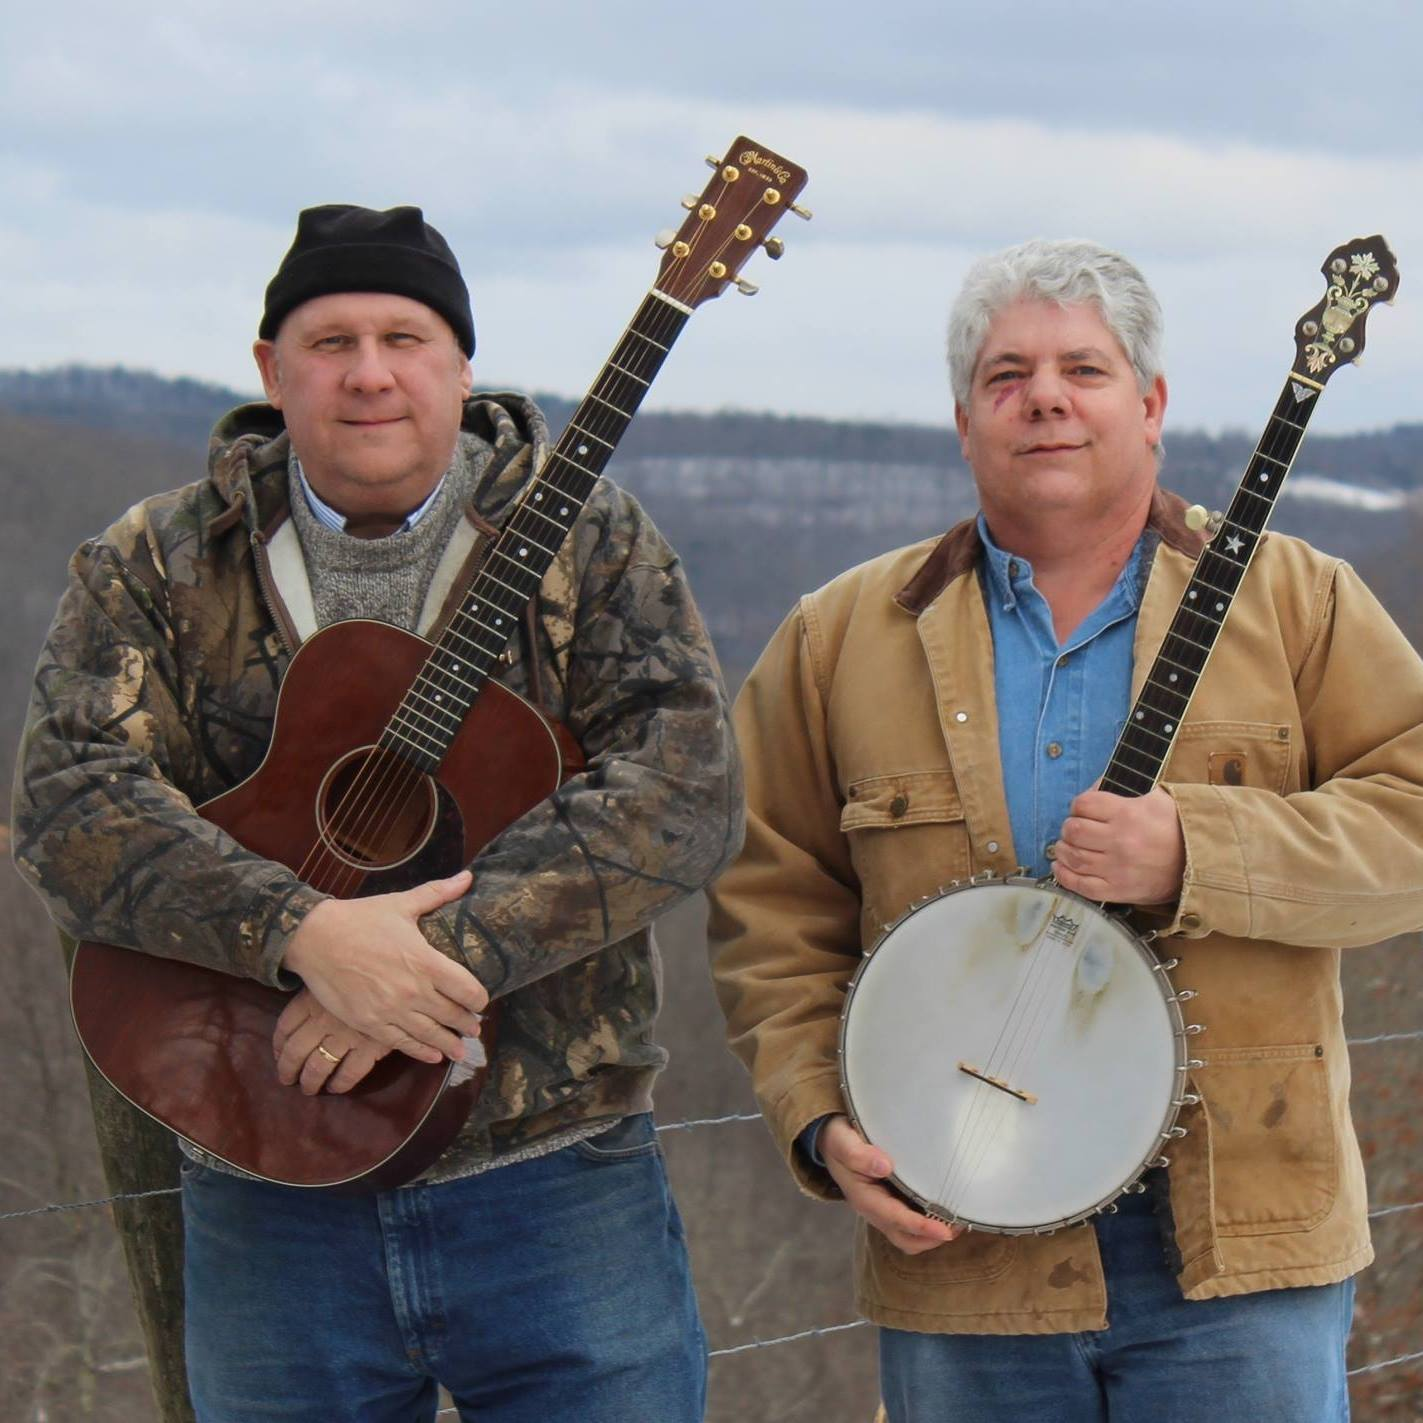 two men standing outside one is holding a banjo and the other a guitar